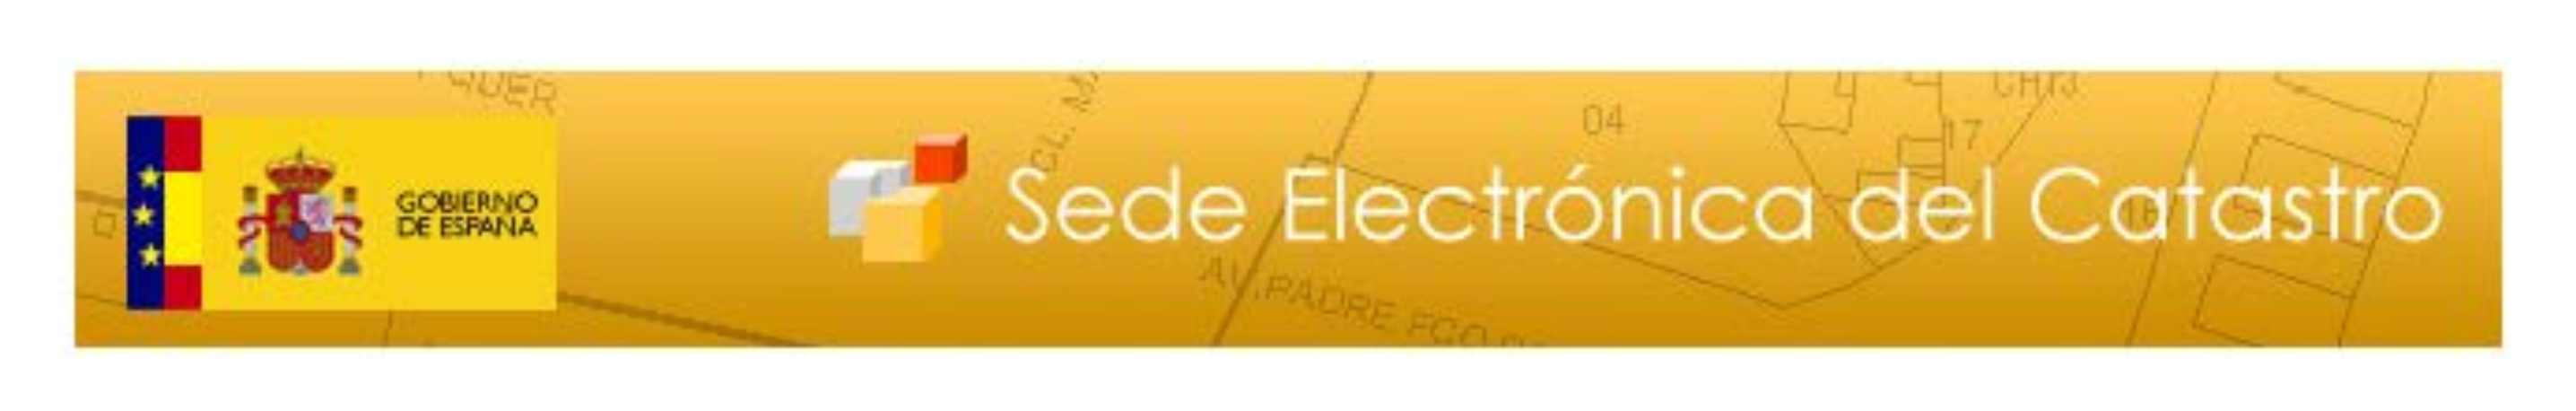 Sede electronica catastro